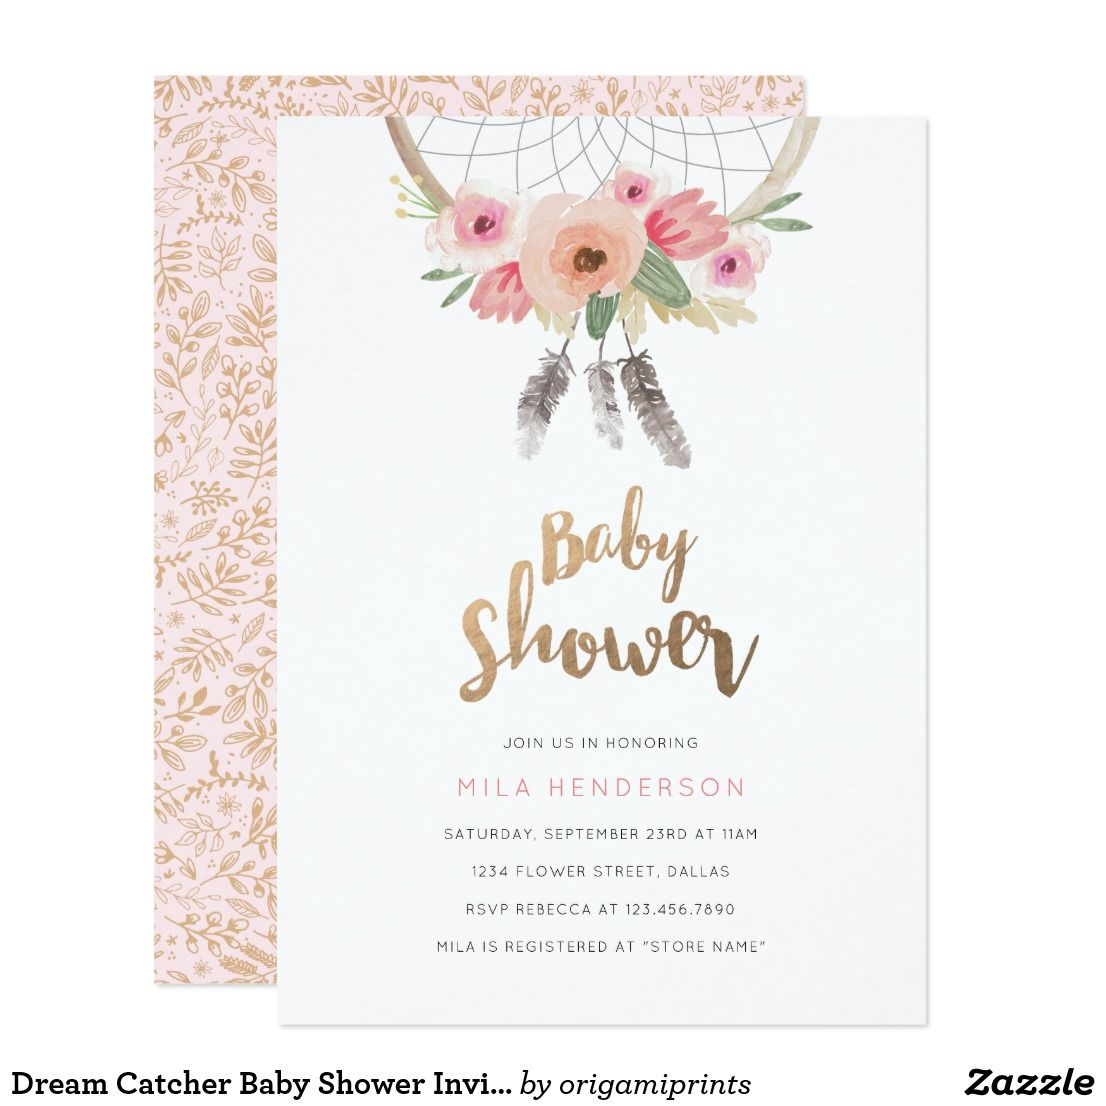 Dream Catcher Baby Shower Invitation Rustic and girly watercolor ...